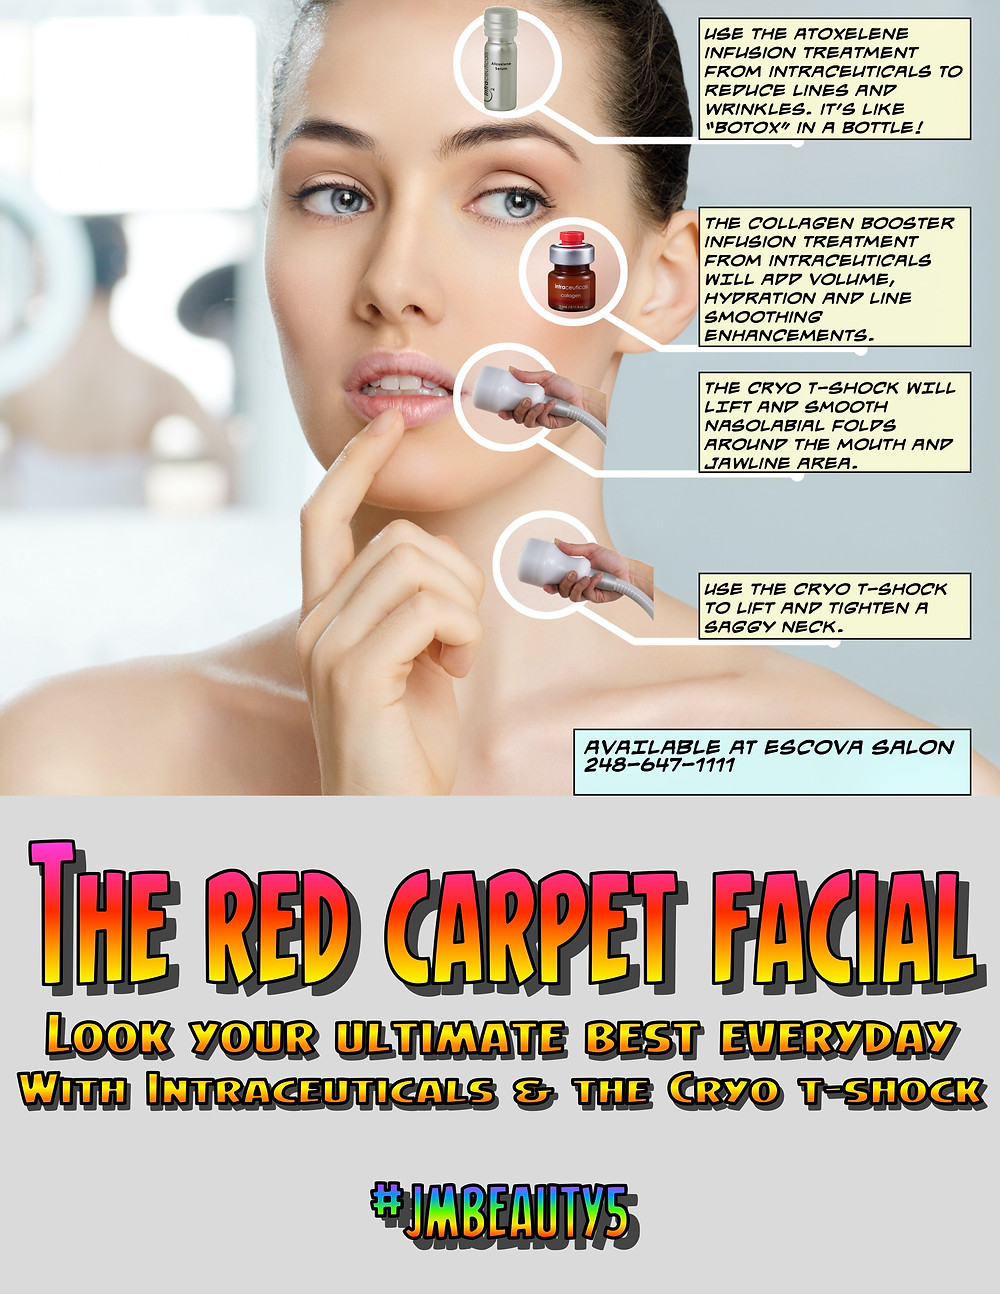 The Red Carpet Facial